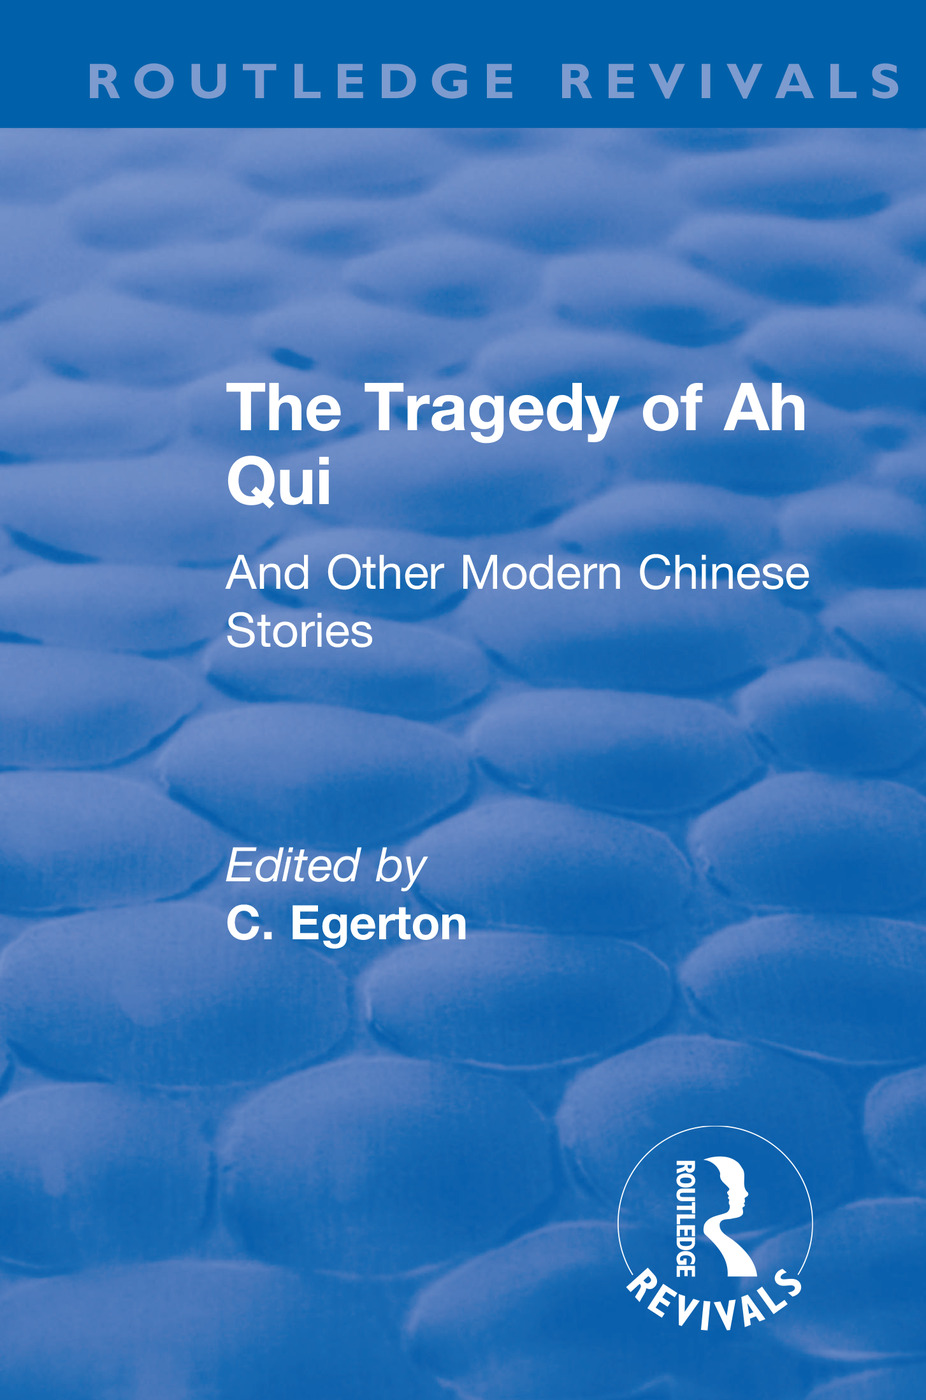 Revival: The Tragedy of Ah Qui (1930): And Other Modern Chinese Stories book cover